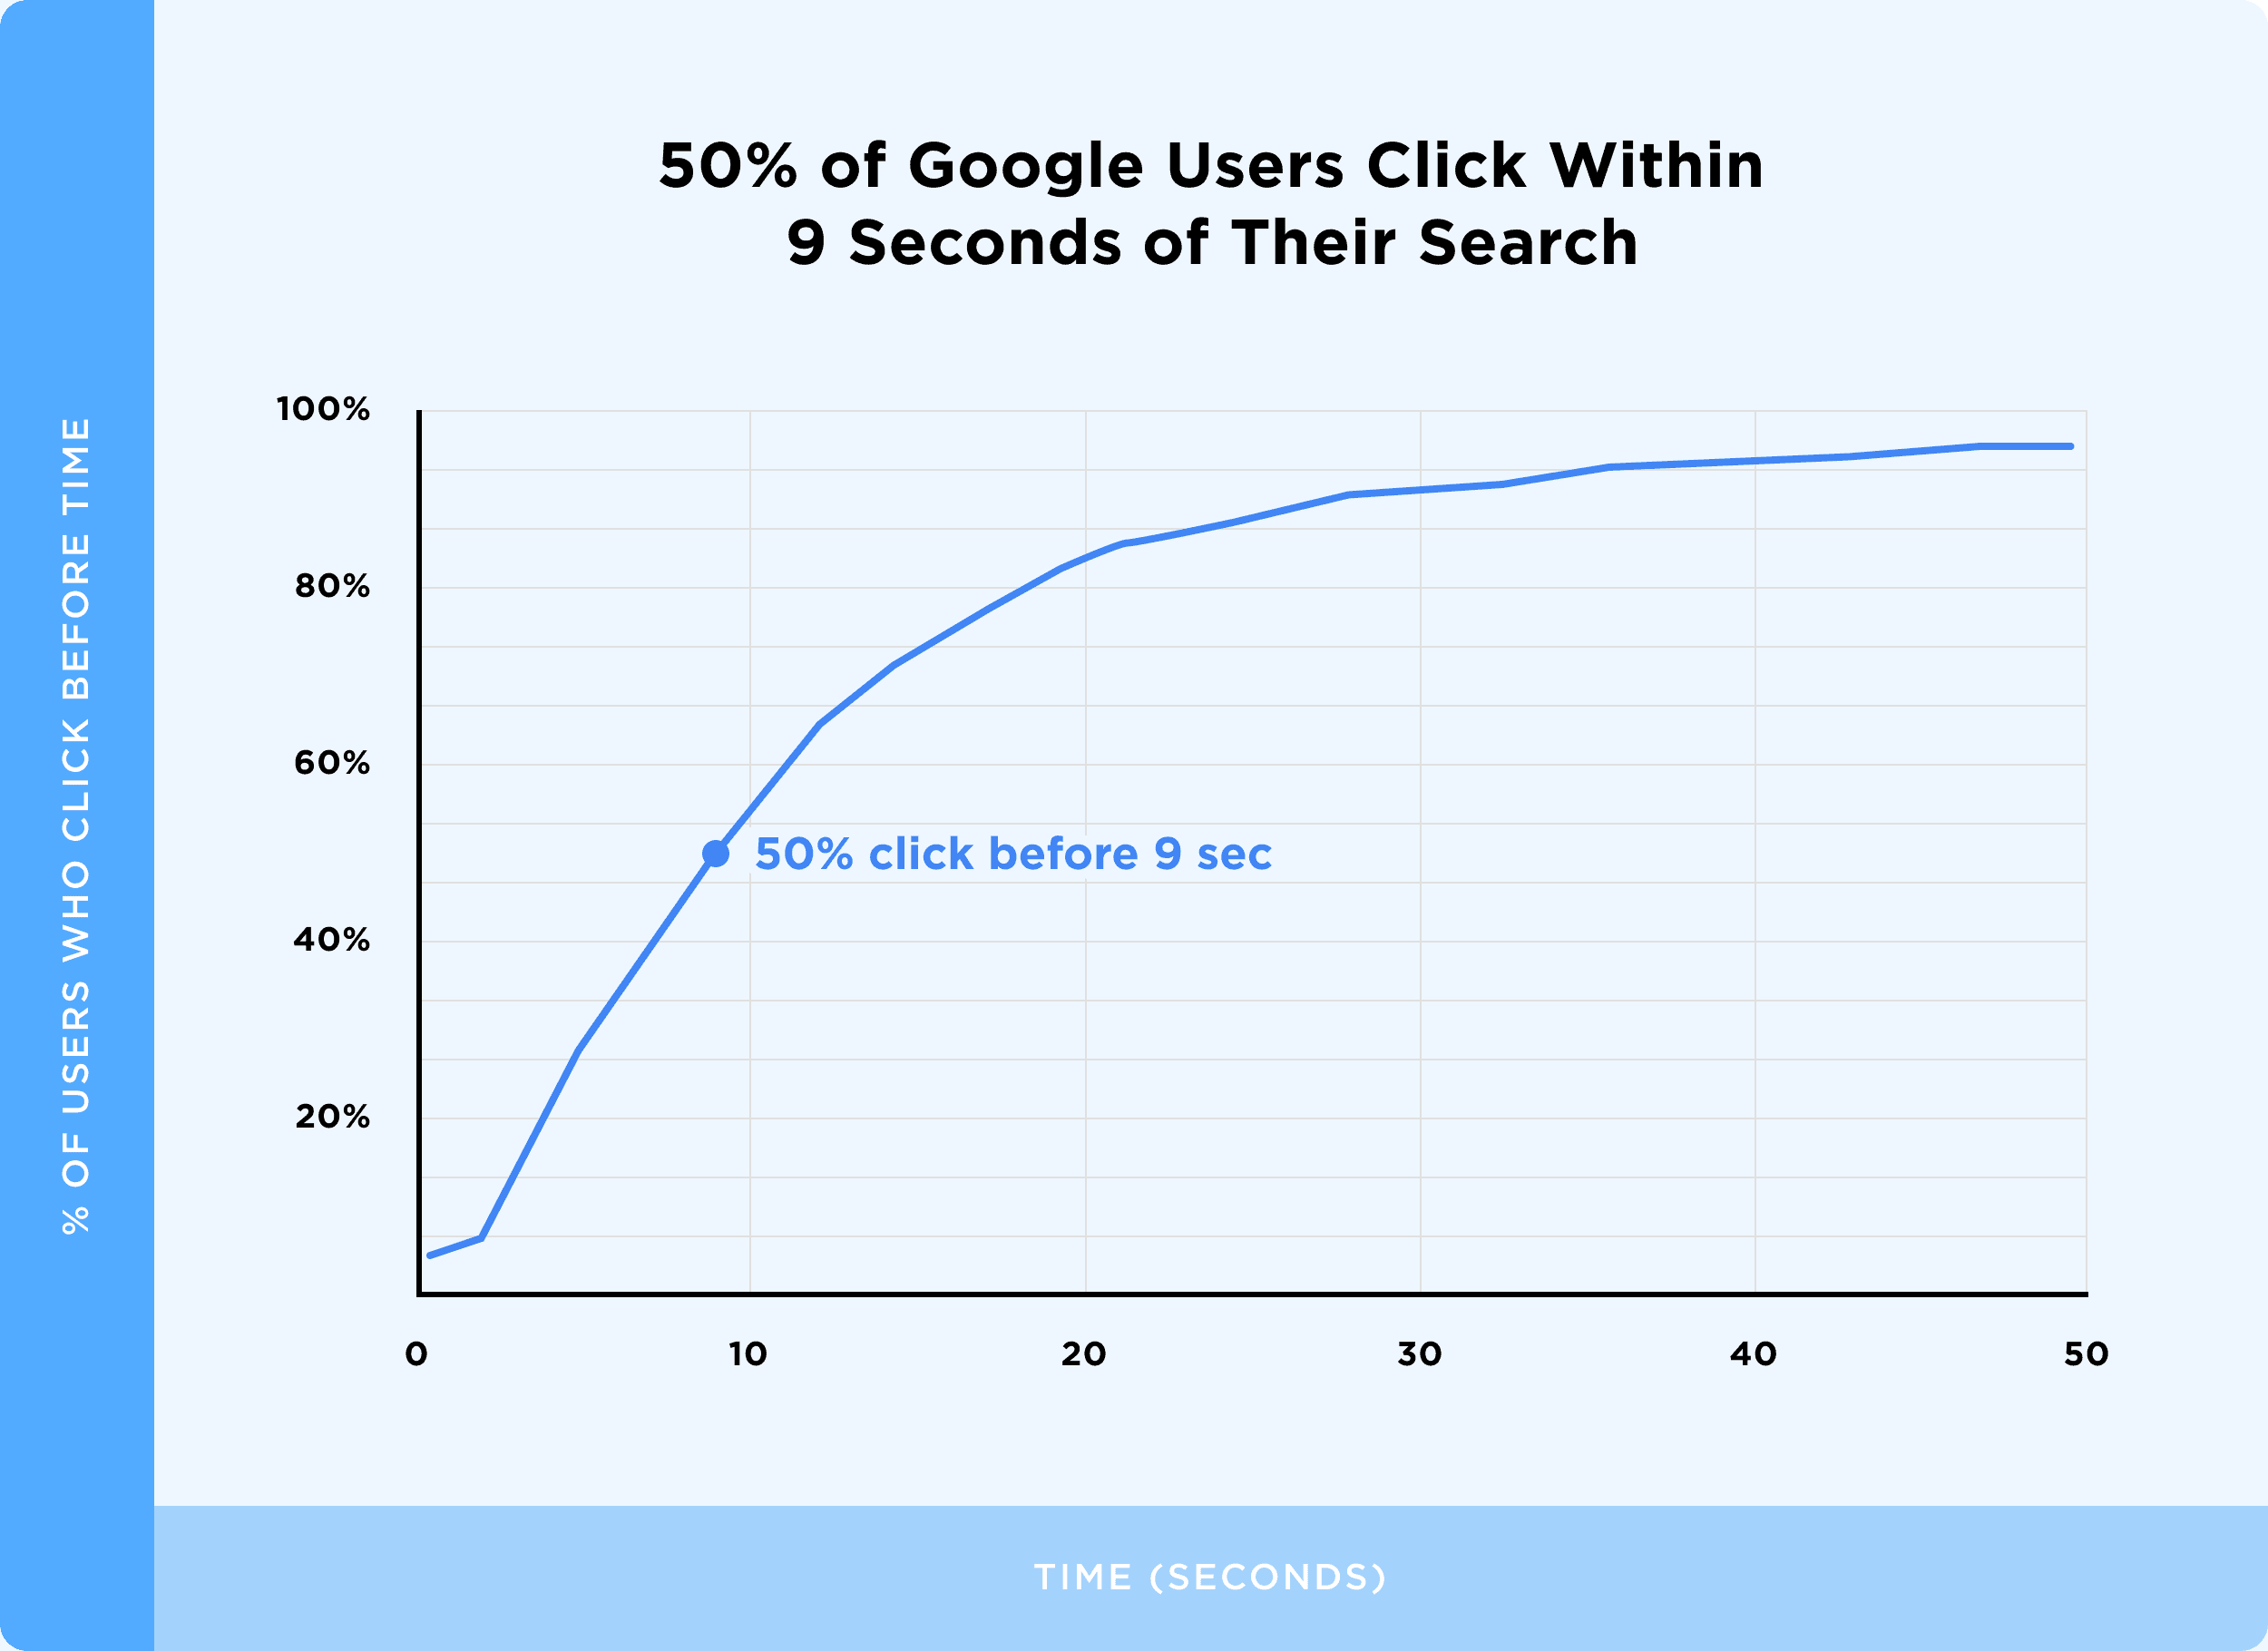 50% of Google Users Click Within 9 Seconds of Their Search